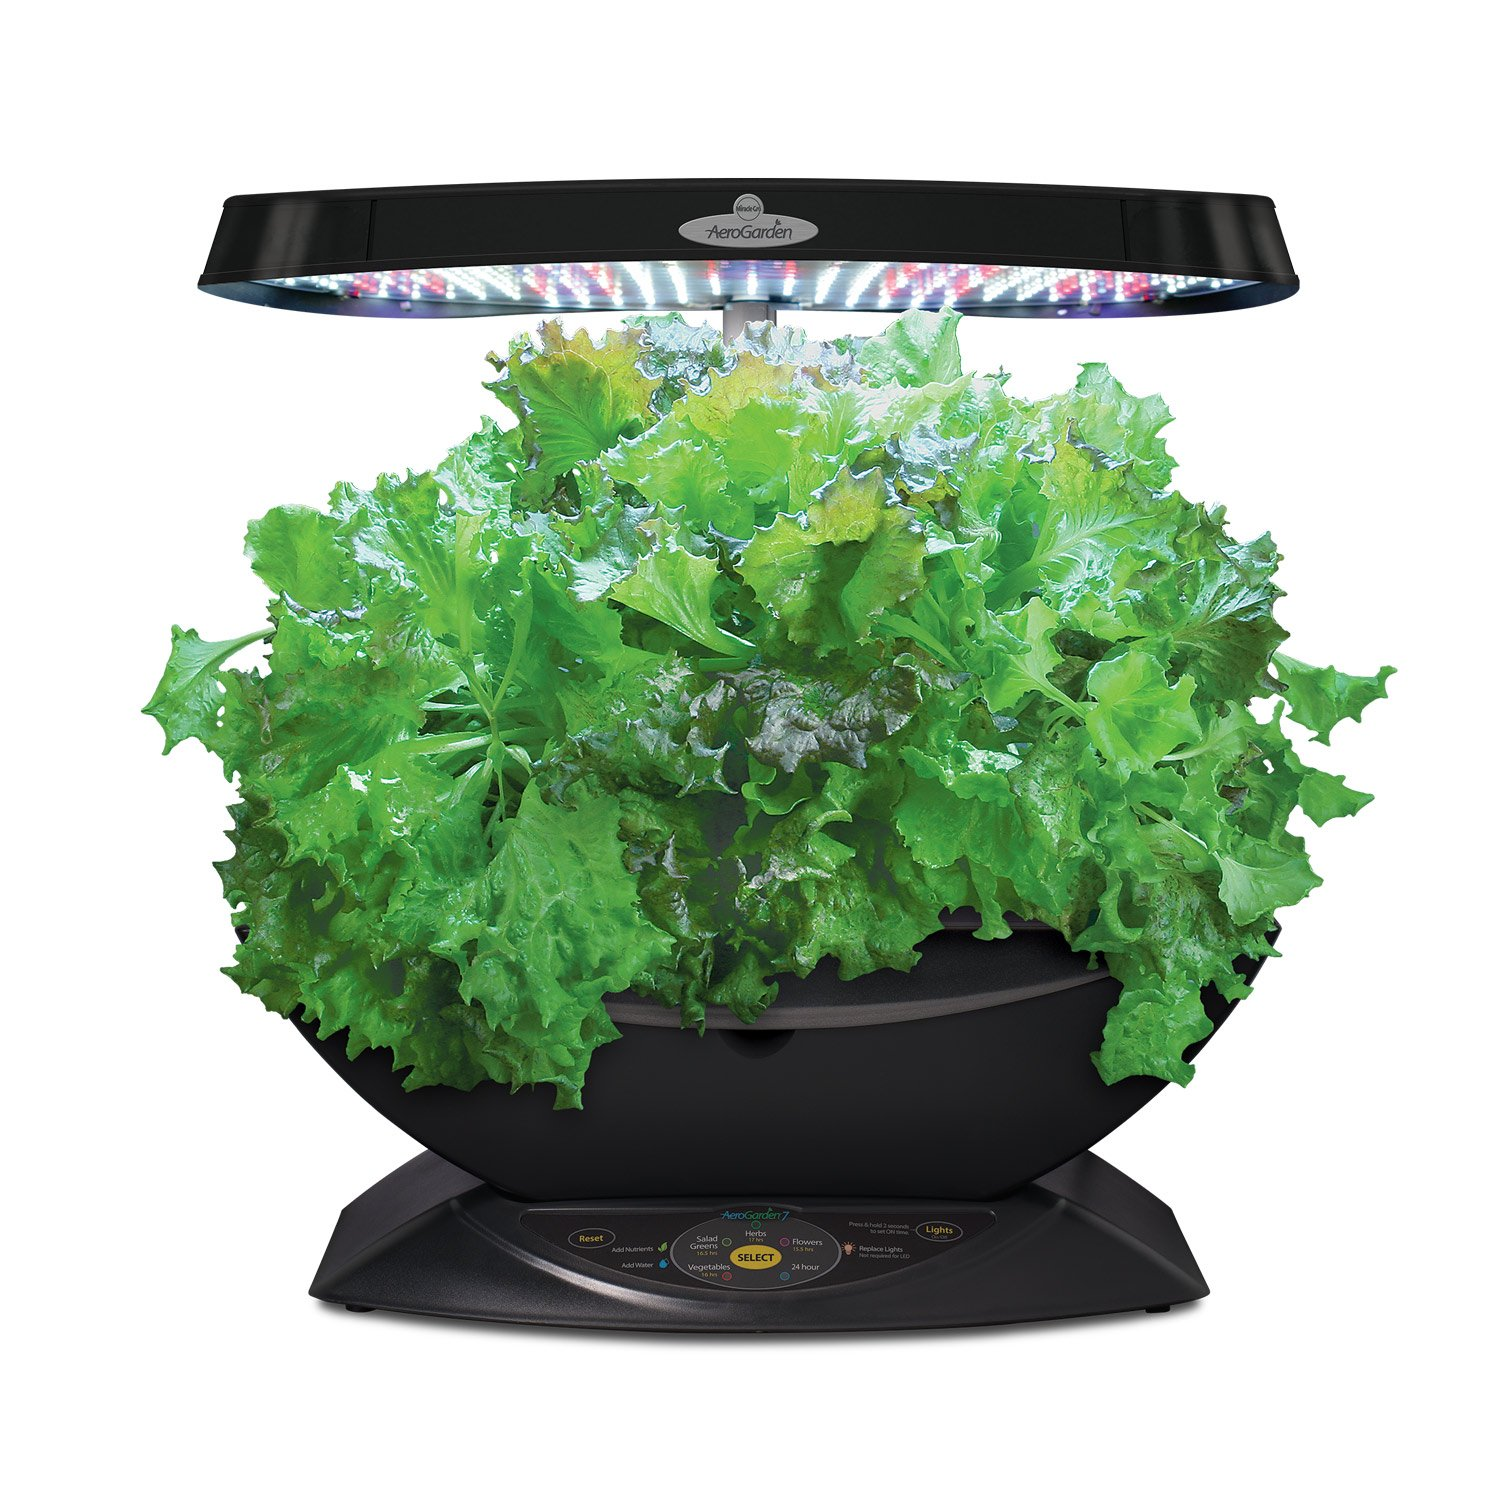 Herb Kits For Indoors: Miracle-Gro AeroGarden 7-Pod LED Indoor Garden With